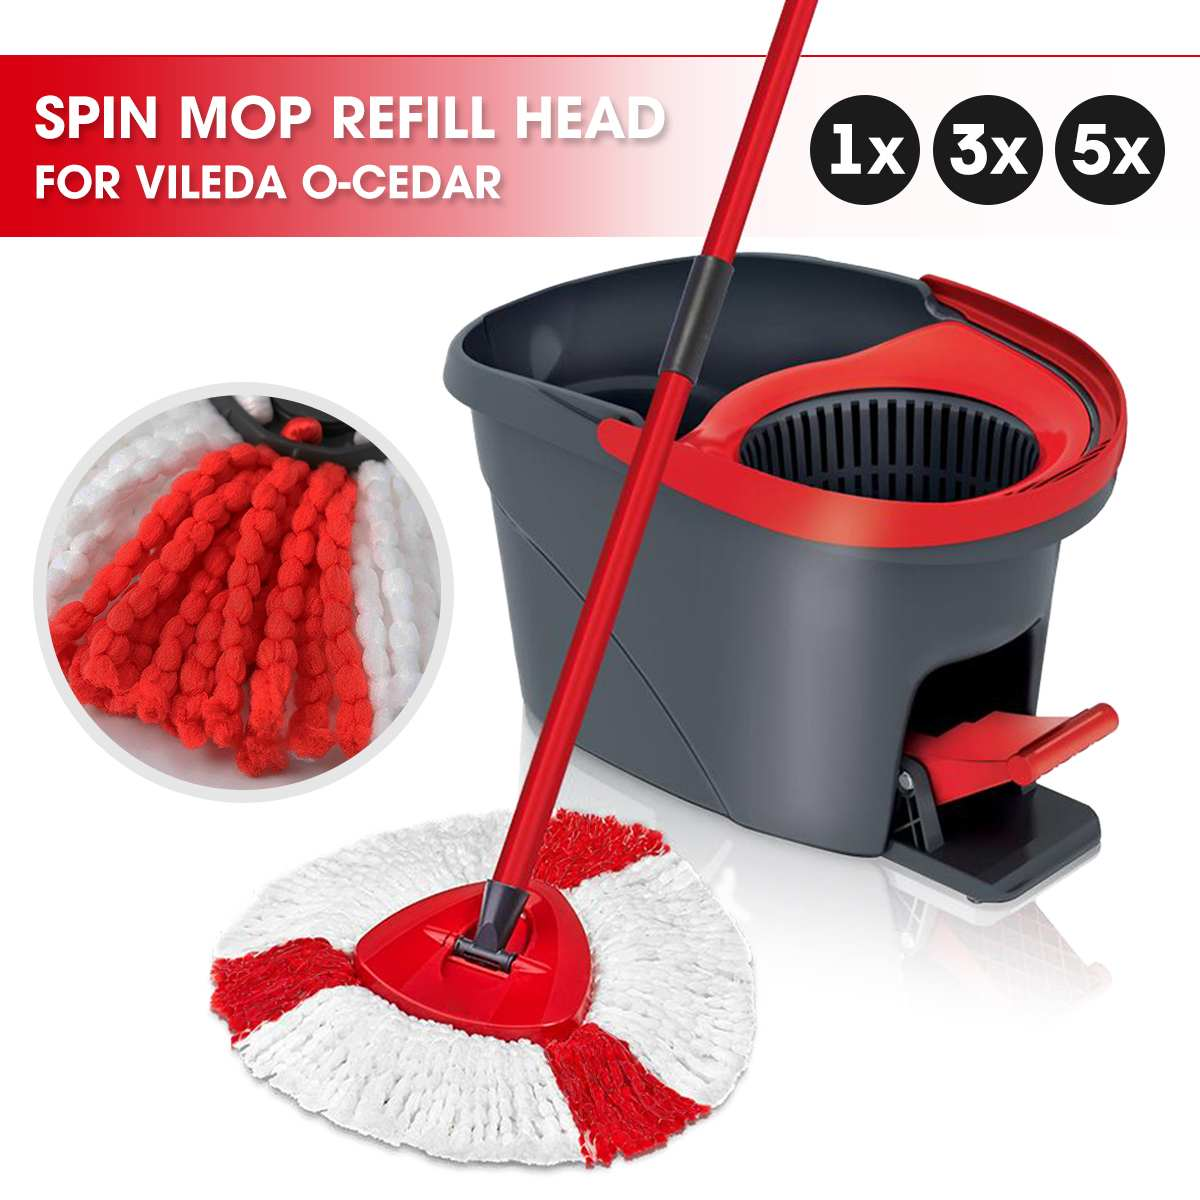 1/3/5pcs Replacement Microfibre Spin Mop Clean Refill Head for Vileda O-Cedar EasyWring Household Cleaning Tools Mop Accessories(China)